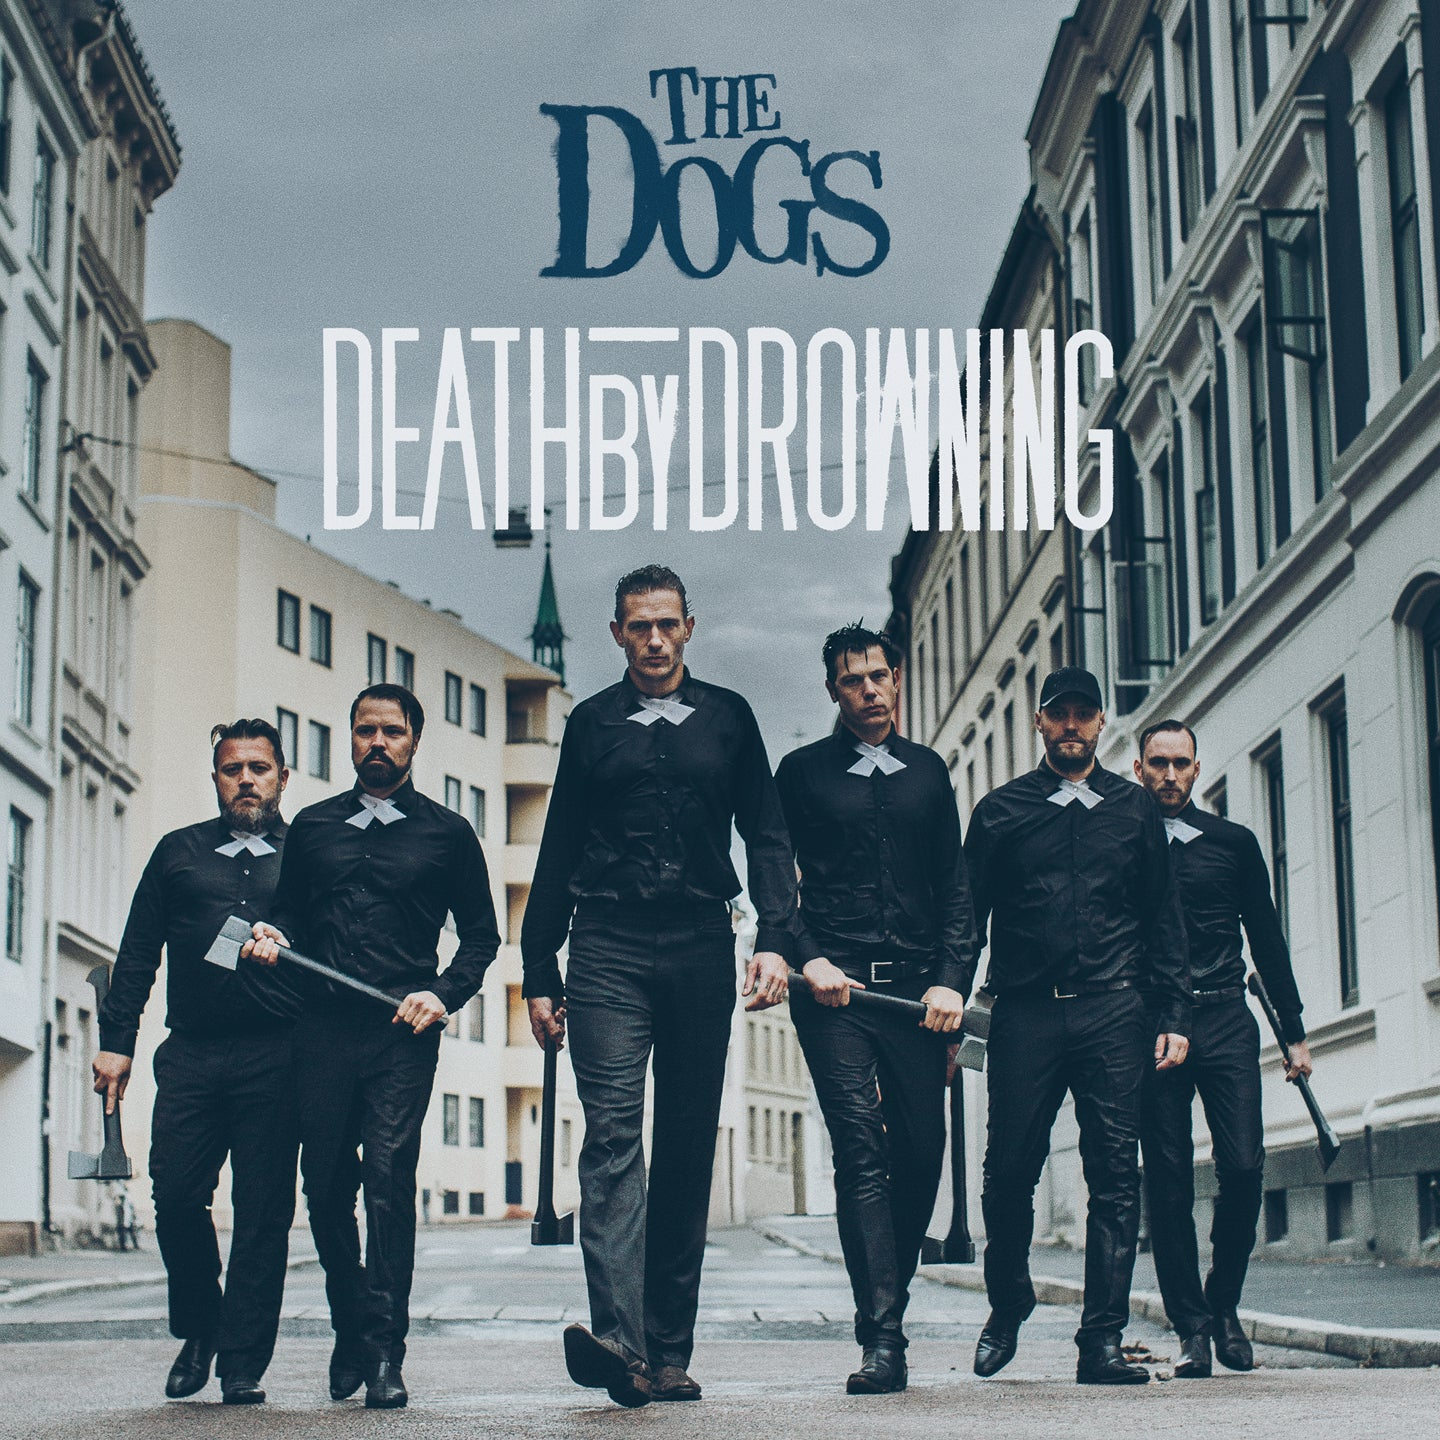 The Dogs - CD - Death by Drowning